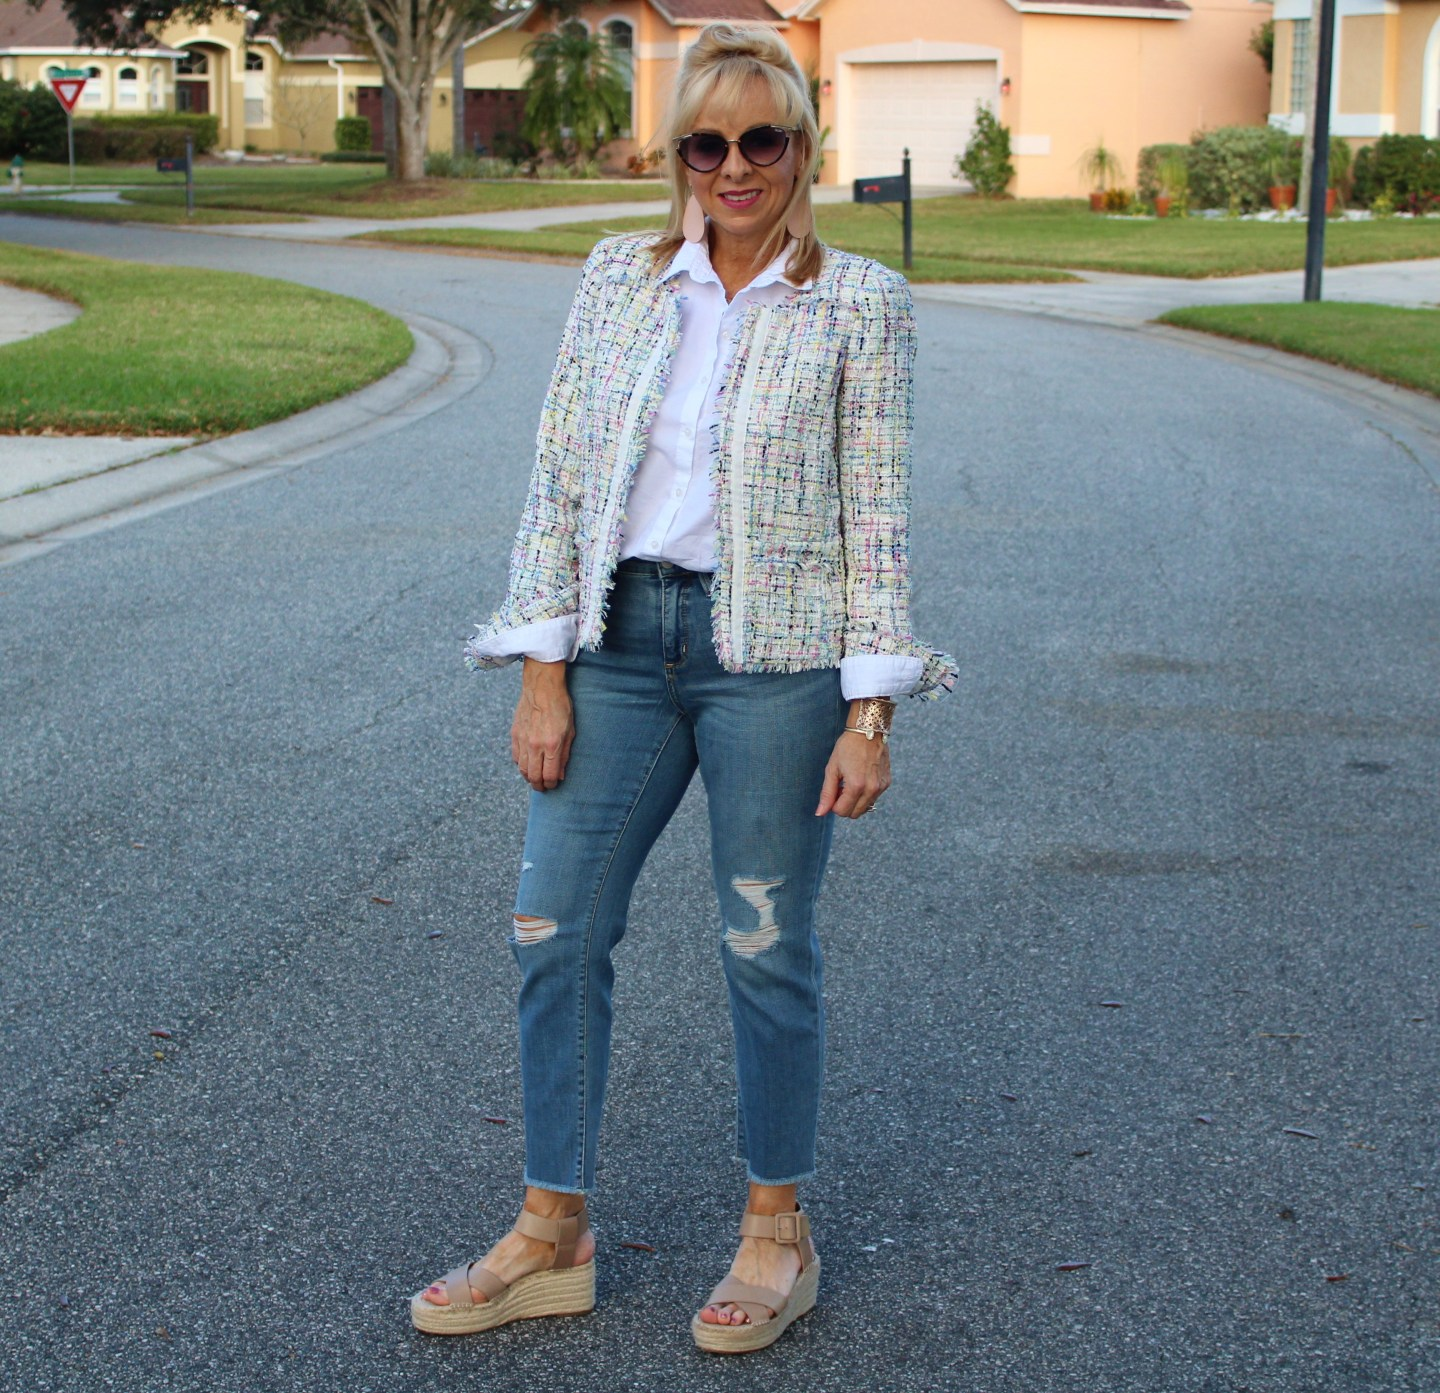 Tweed Jacket + Distressed Denim